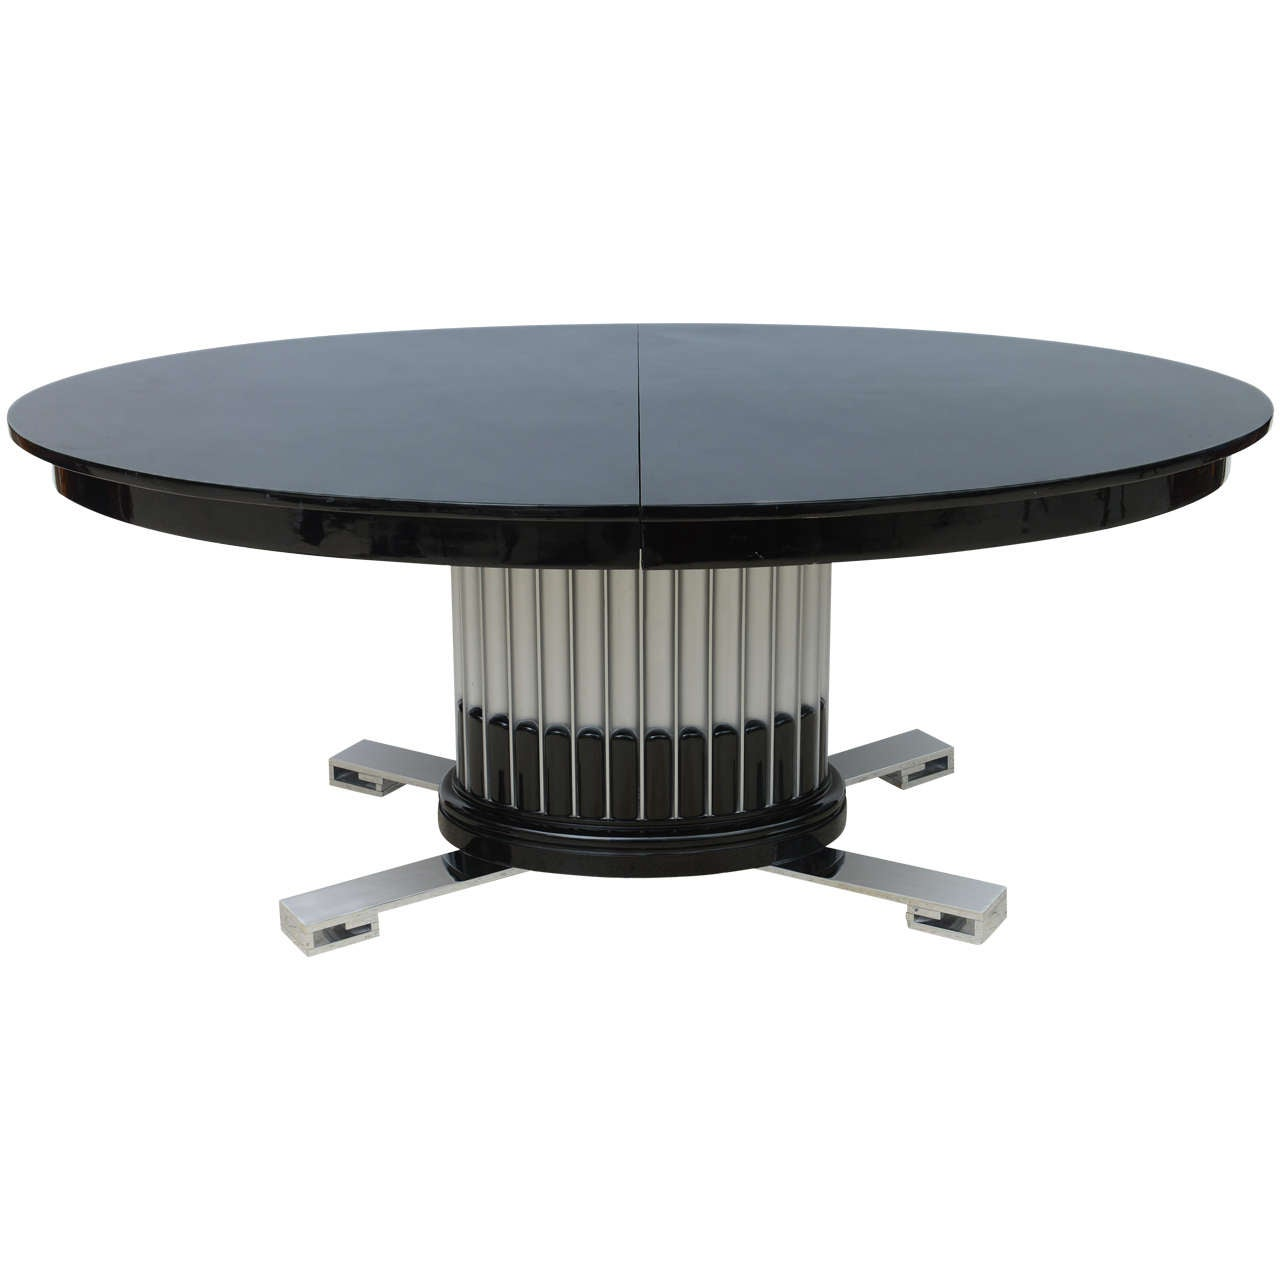 Black Lacquered Chrome And Silver Leaf Extension Dining Table By Paul Frankl At 1stdibs